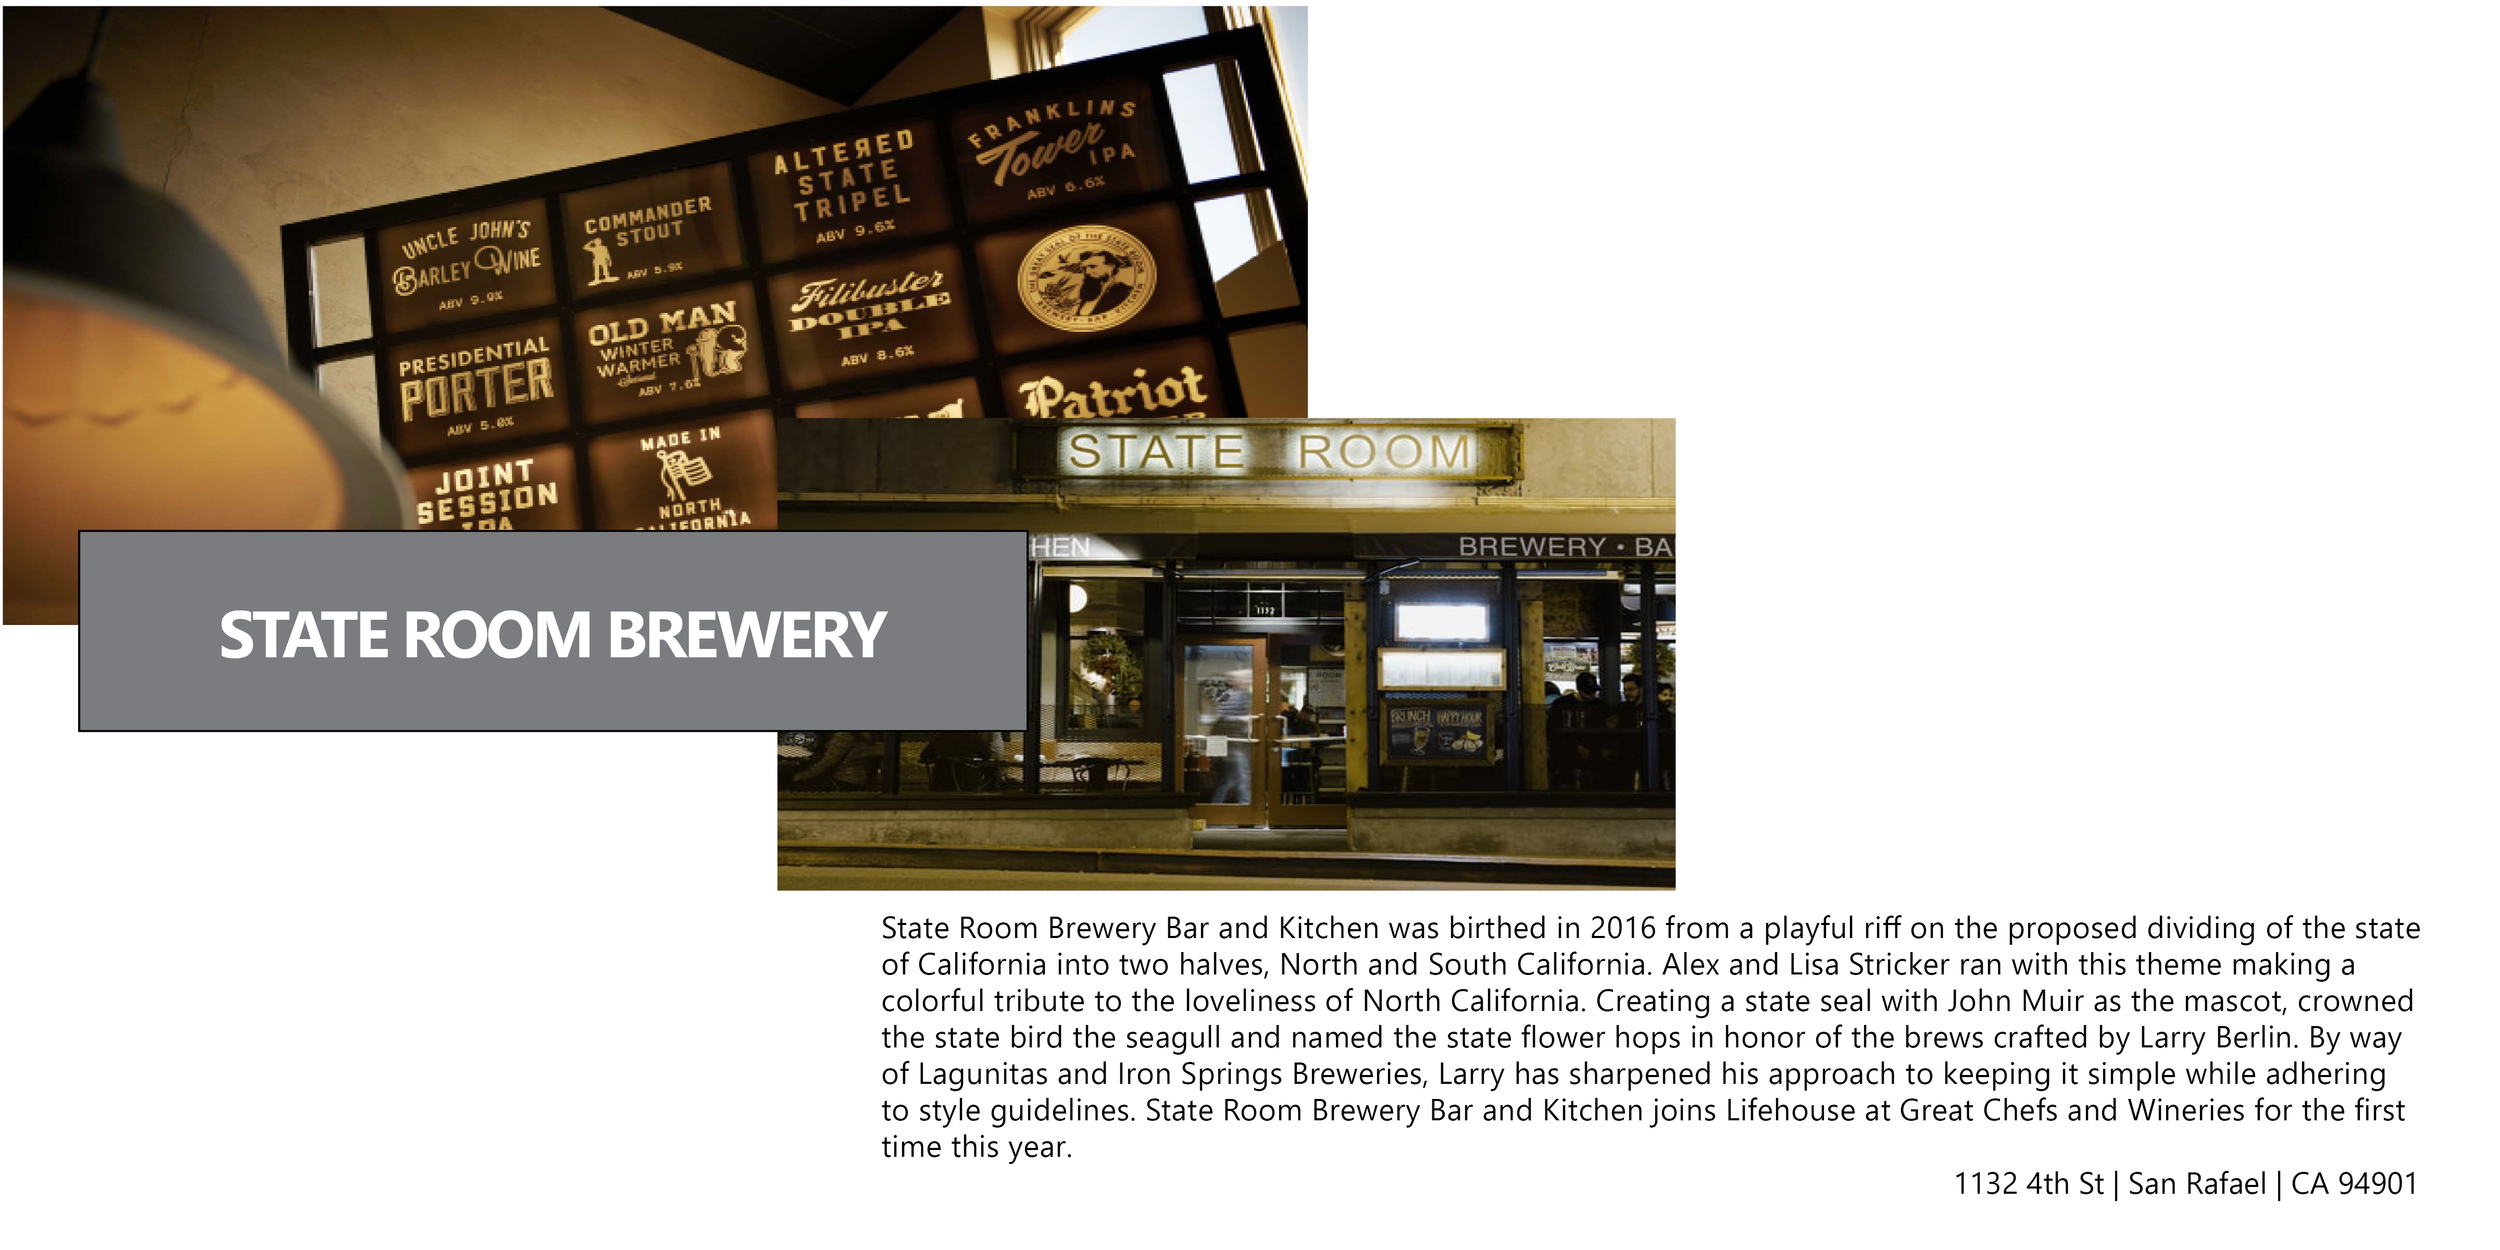 www.stateroombrewery.com